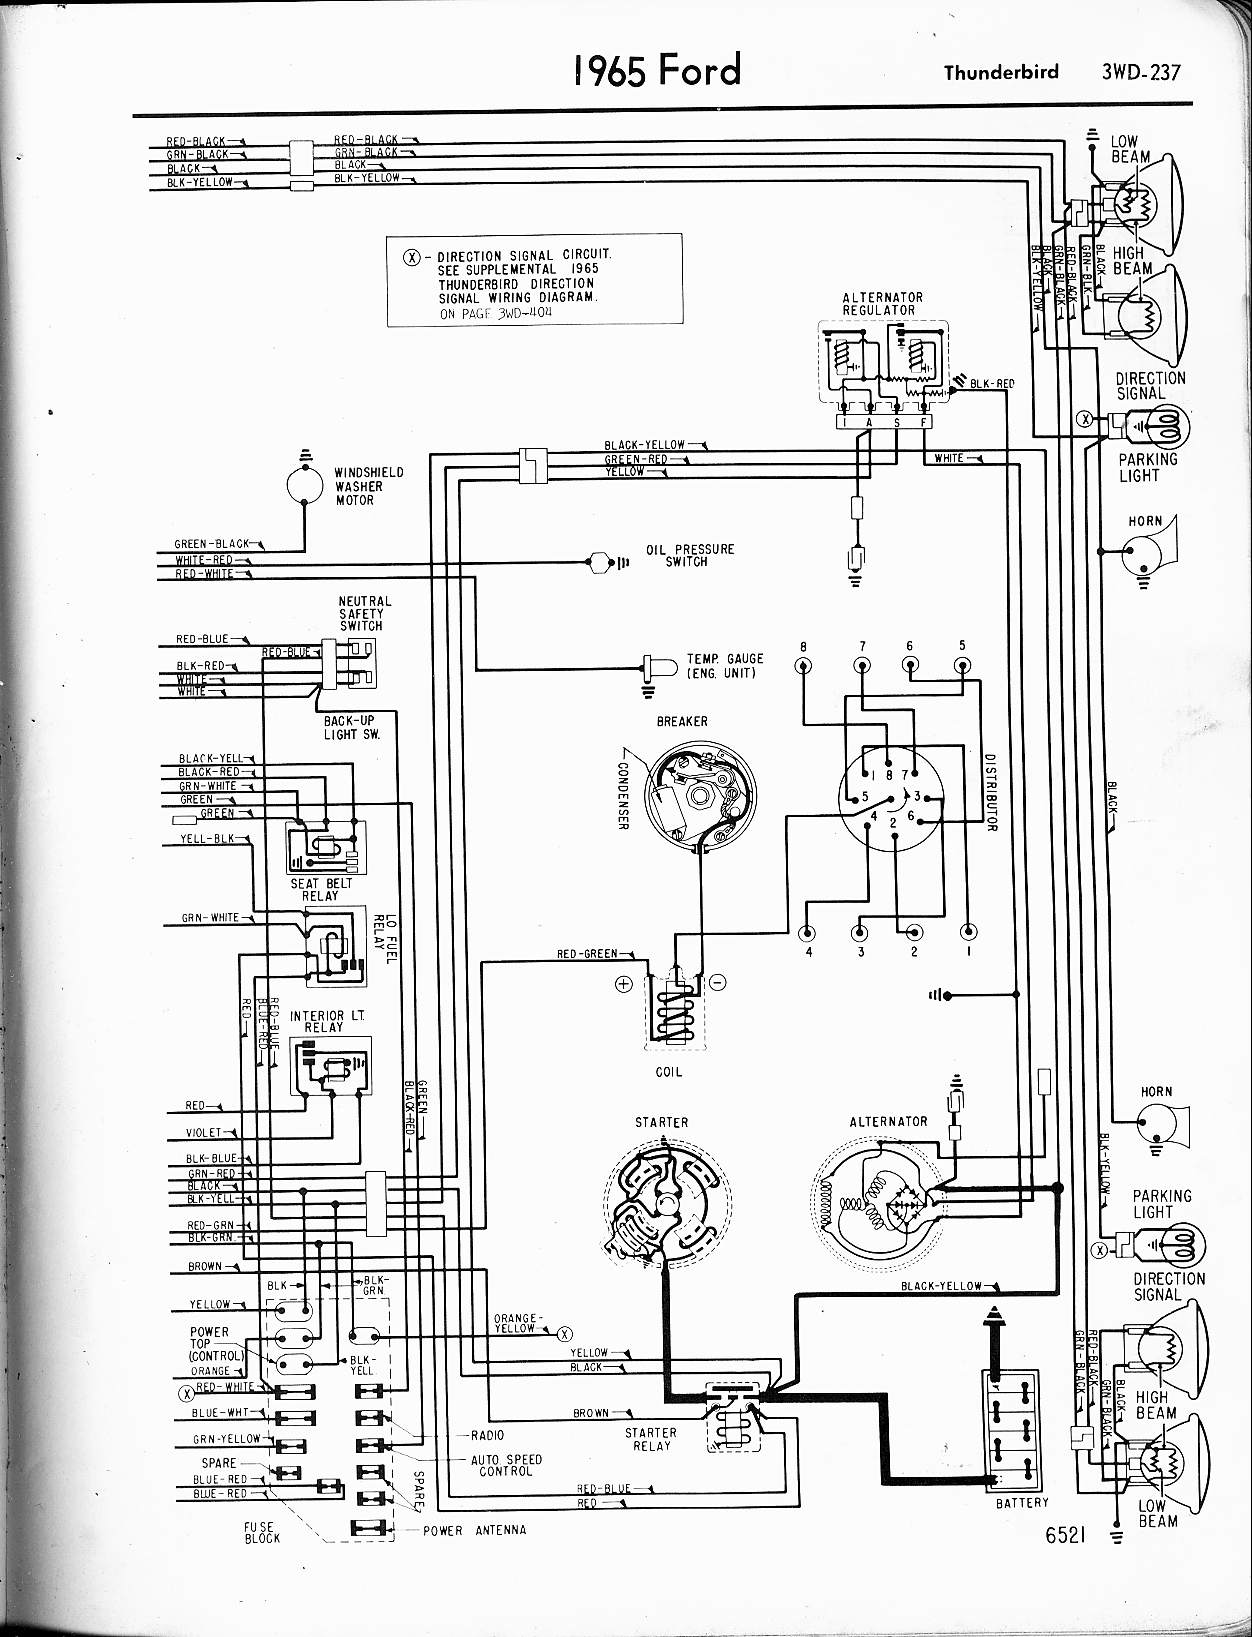 1965 Thunderbird Wiring Diagram - Data Wiring Pair crew-summer -  crew-summer.newmorpheus.it | Ford Thunderbird Wiring Diagrams |  | newmorpheus.it